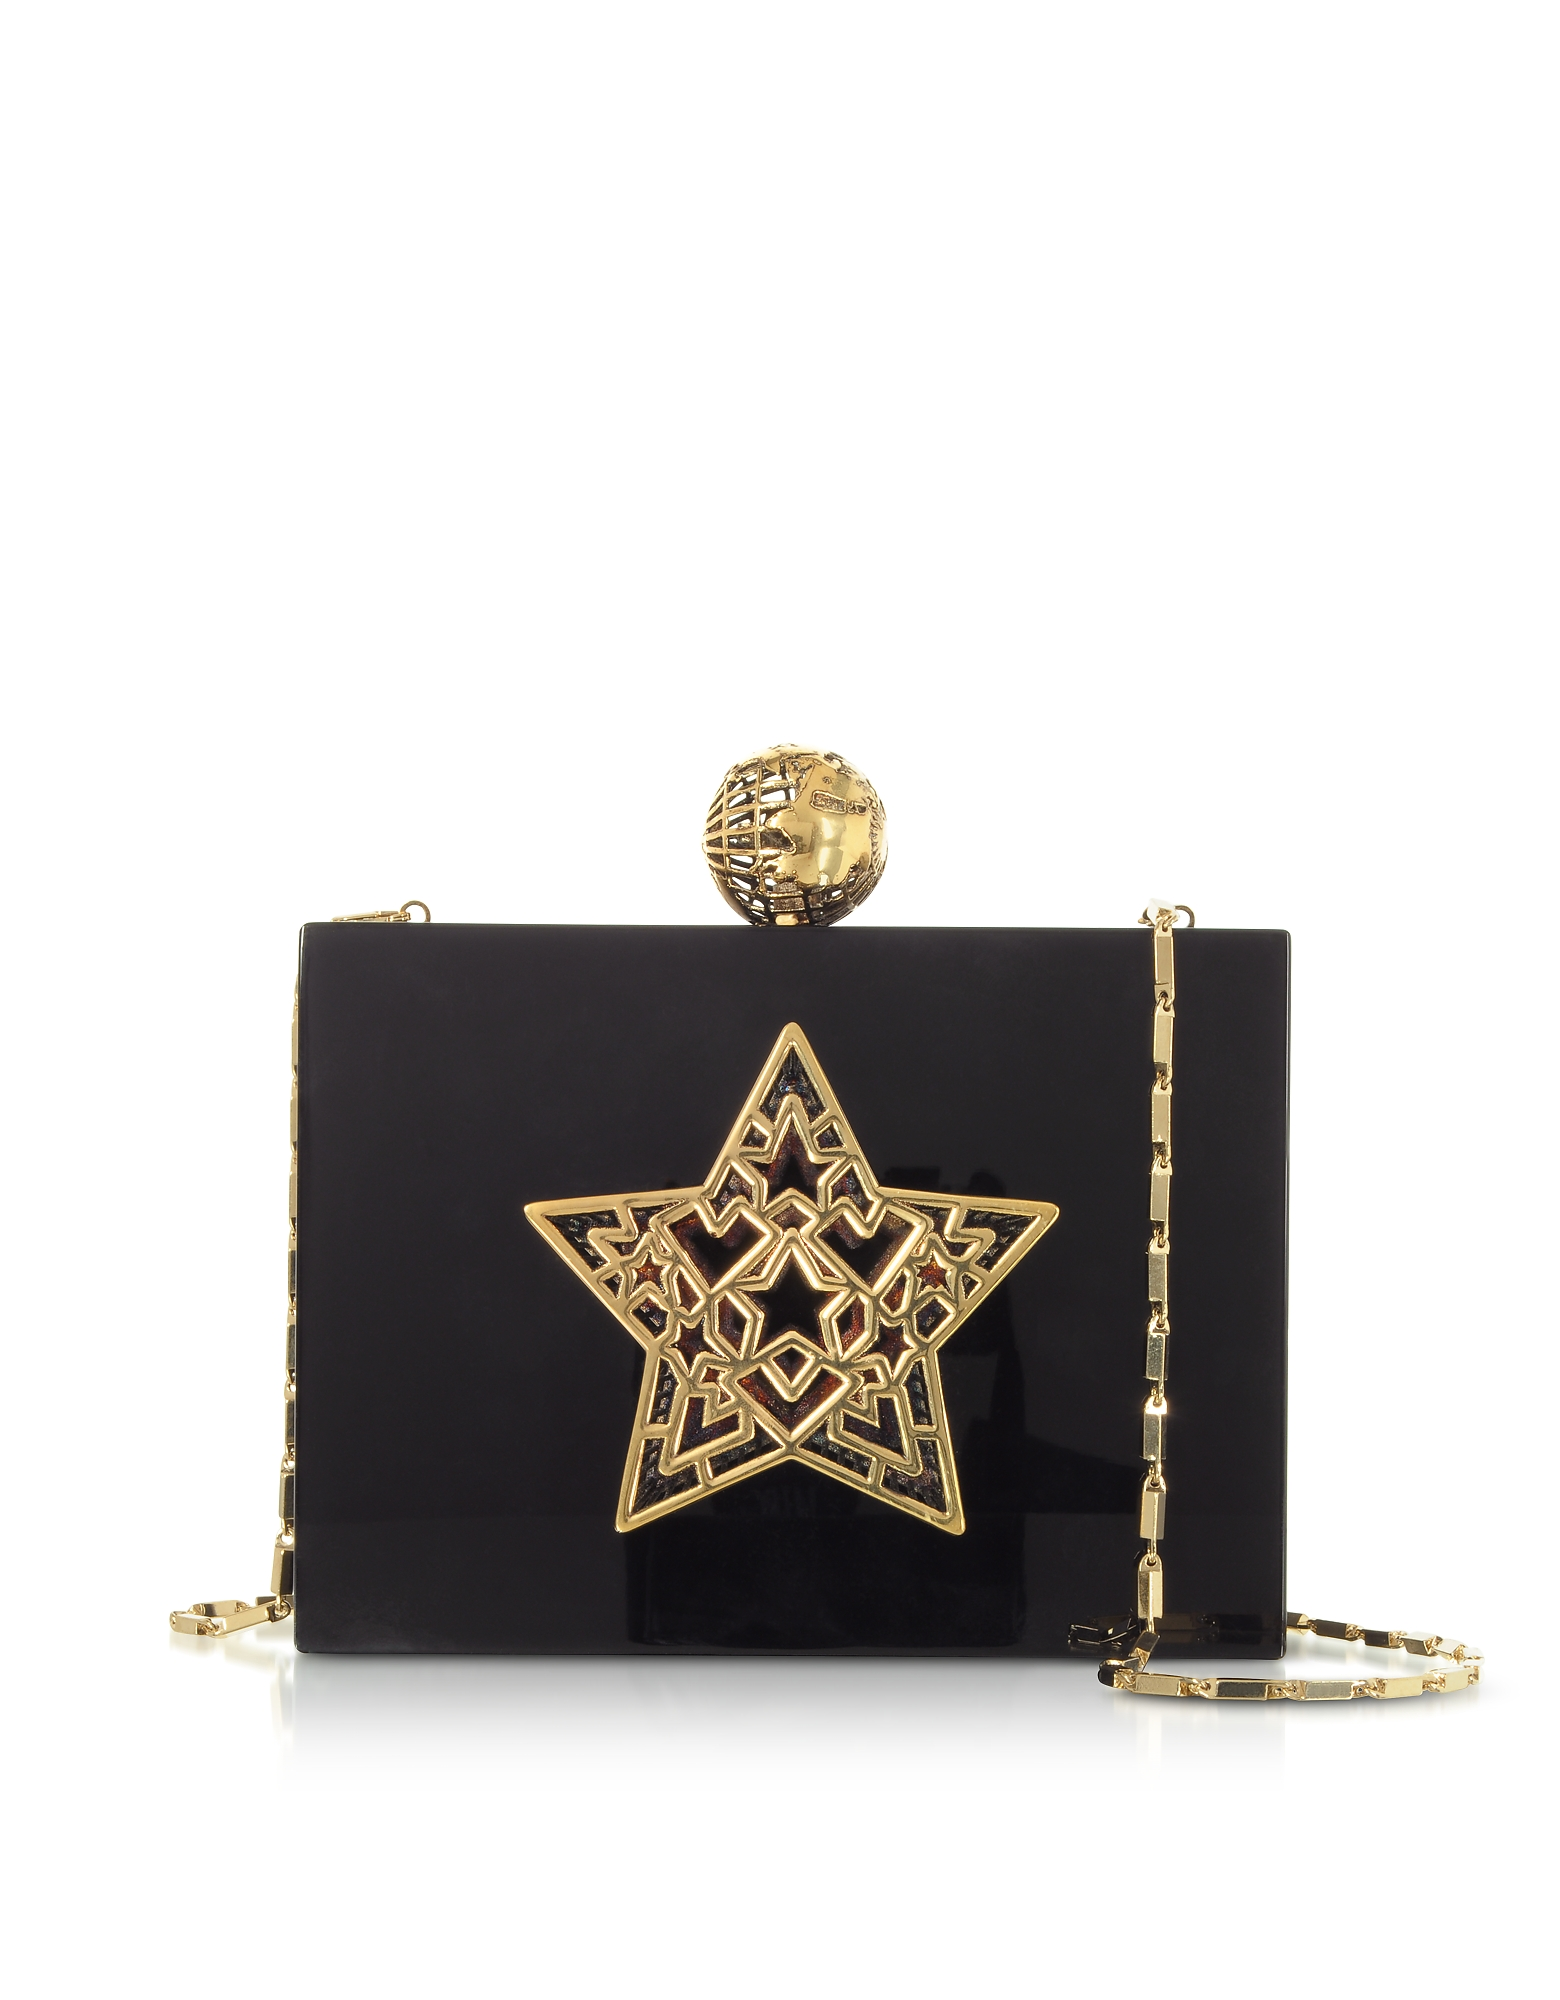 Maissa  Handbags Black Plexiglass Lady Rockstar Clutch w/Chain Strap